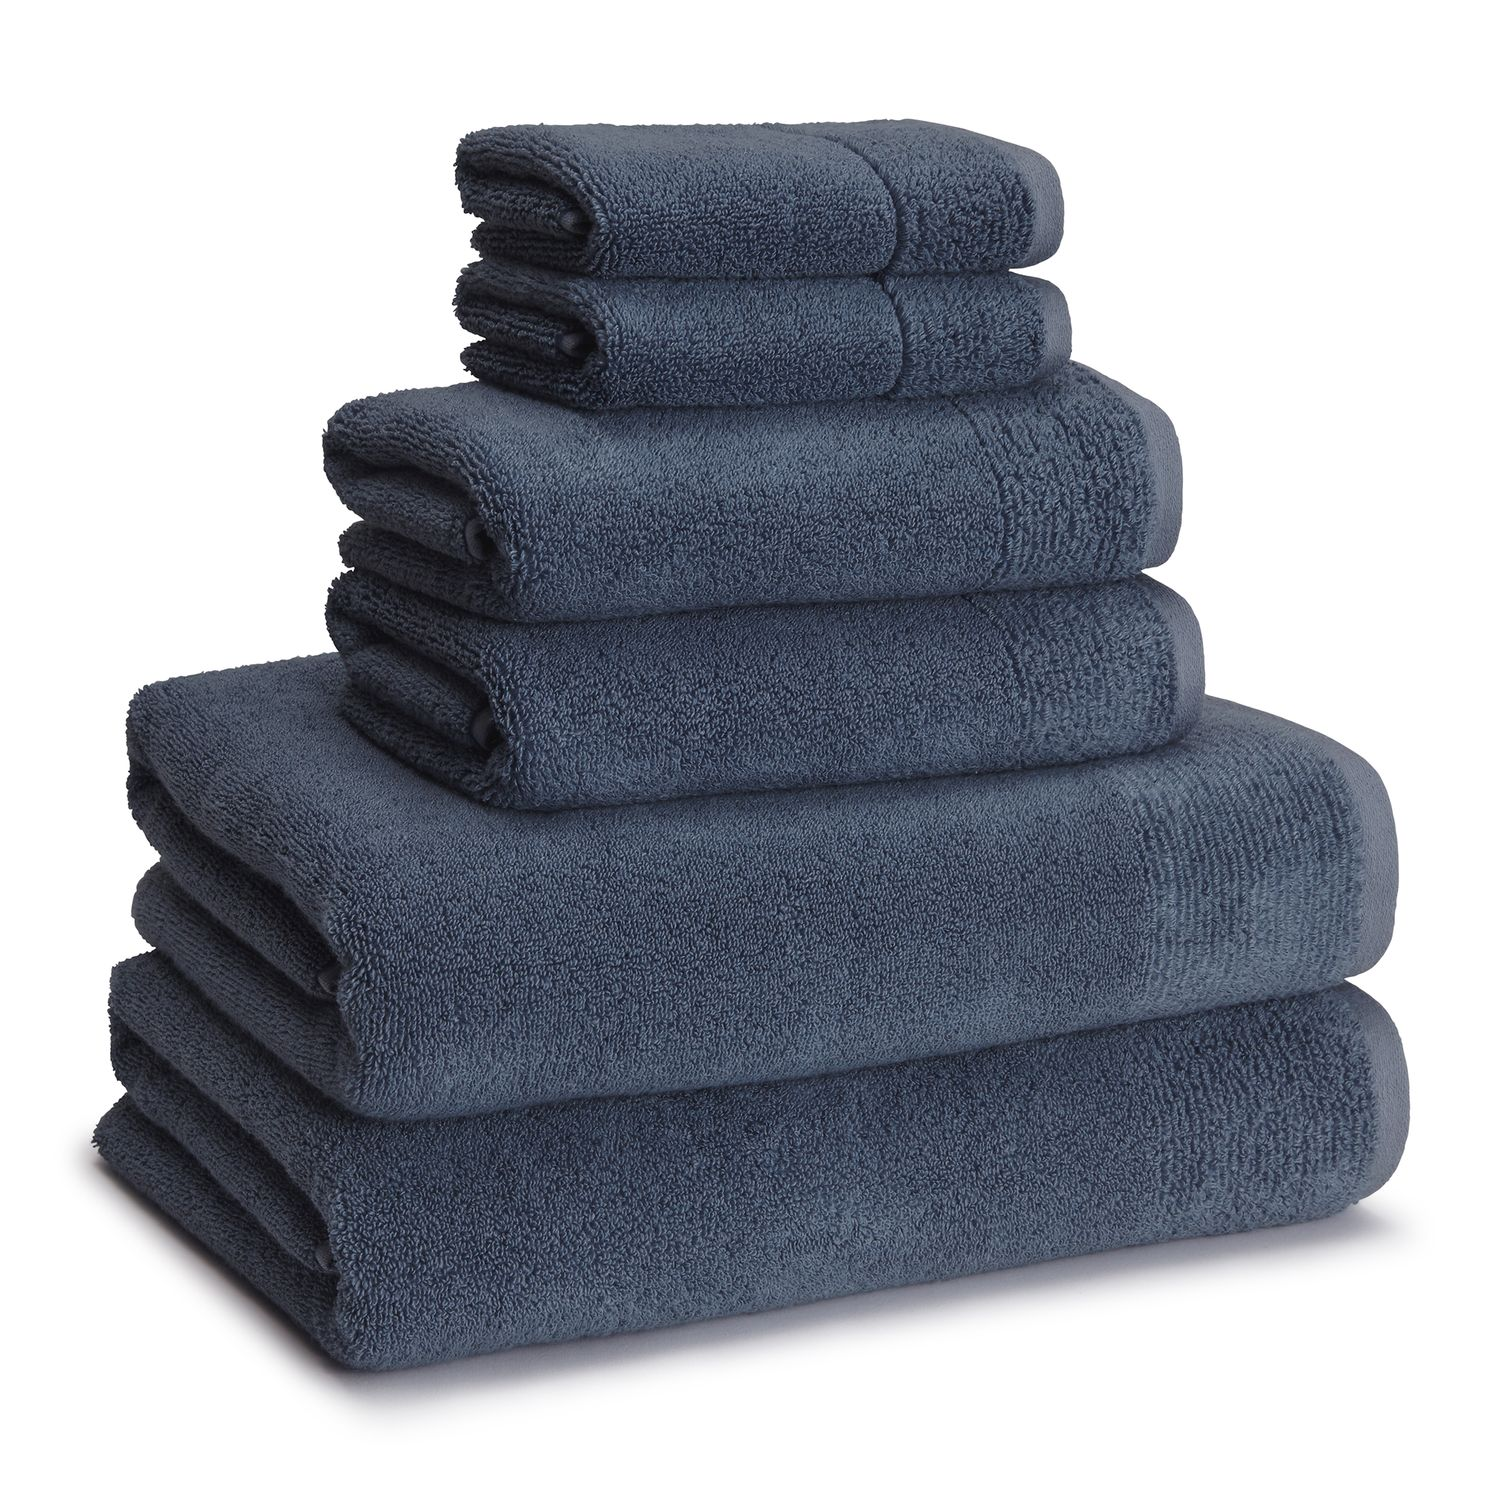 kassatex 6piece kyoto bath towel set - Kassatex